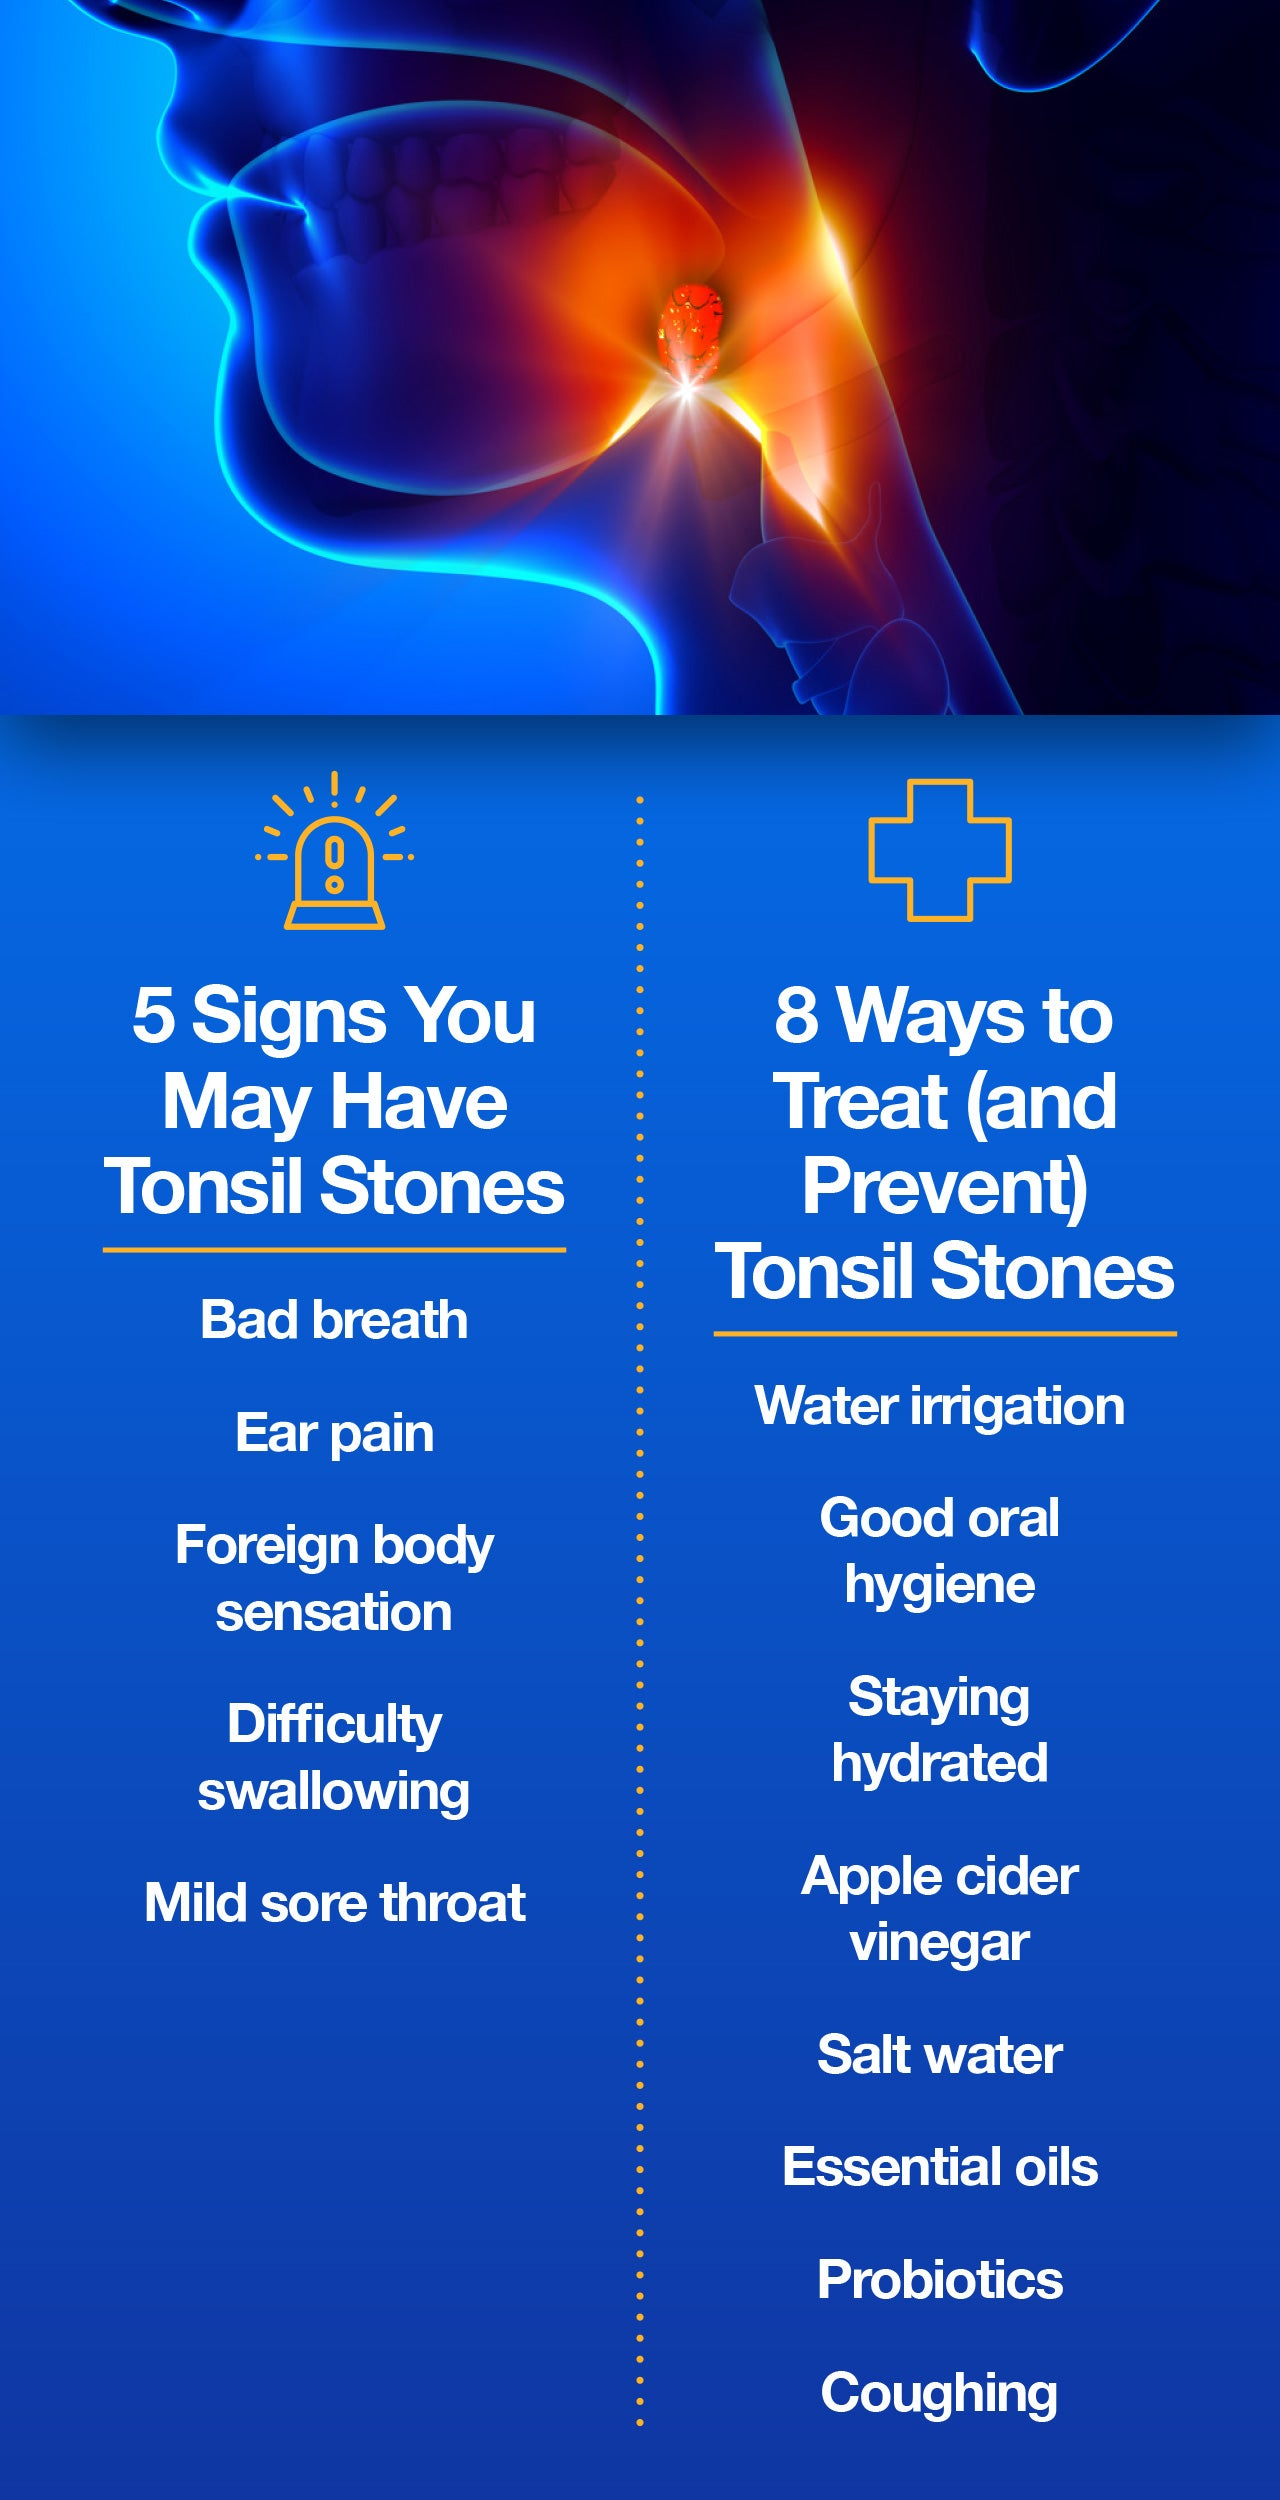 Tonsil stones symptoms and prevention